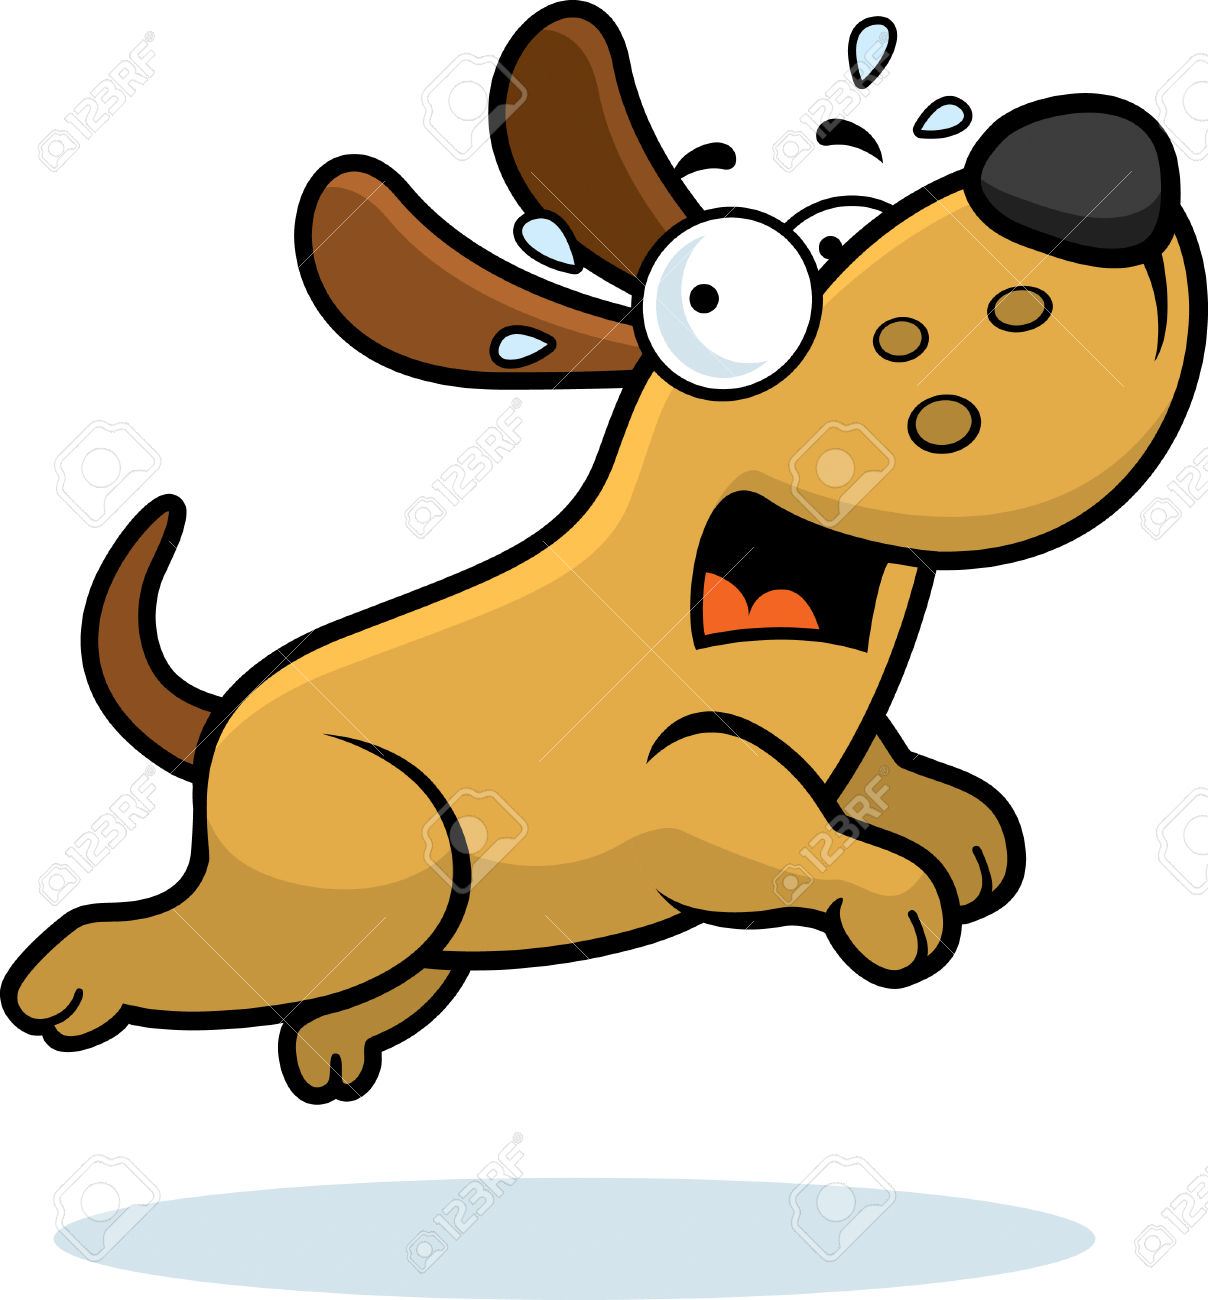 Scary small dog clipart image library library A Cartoon Illustration Of A Dog Running Away Scared. Royalty Free ... image library library